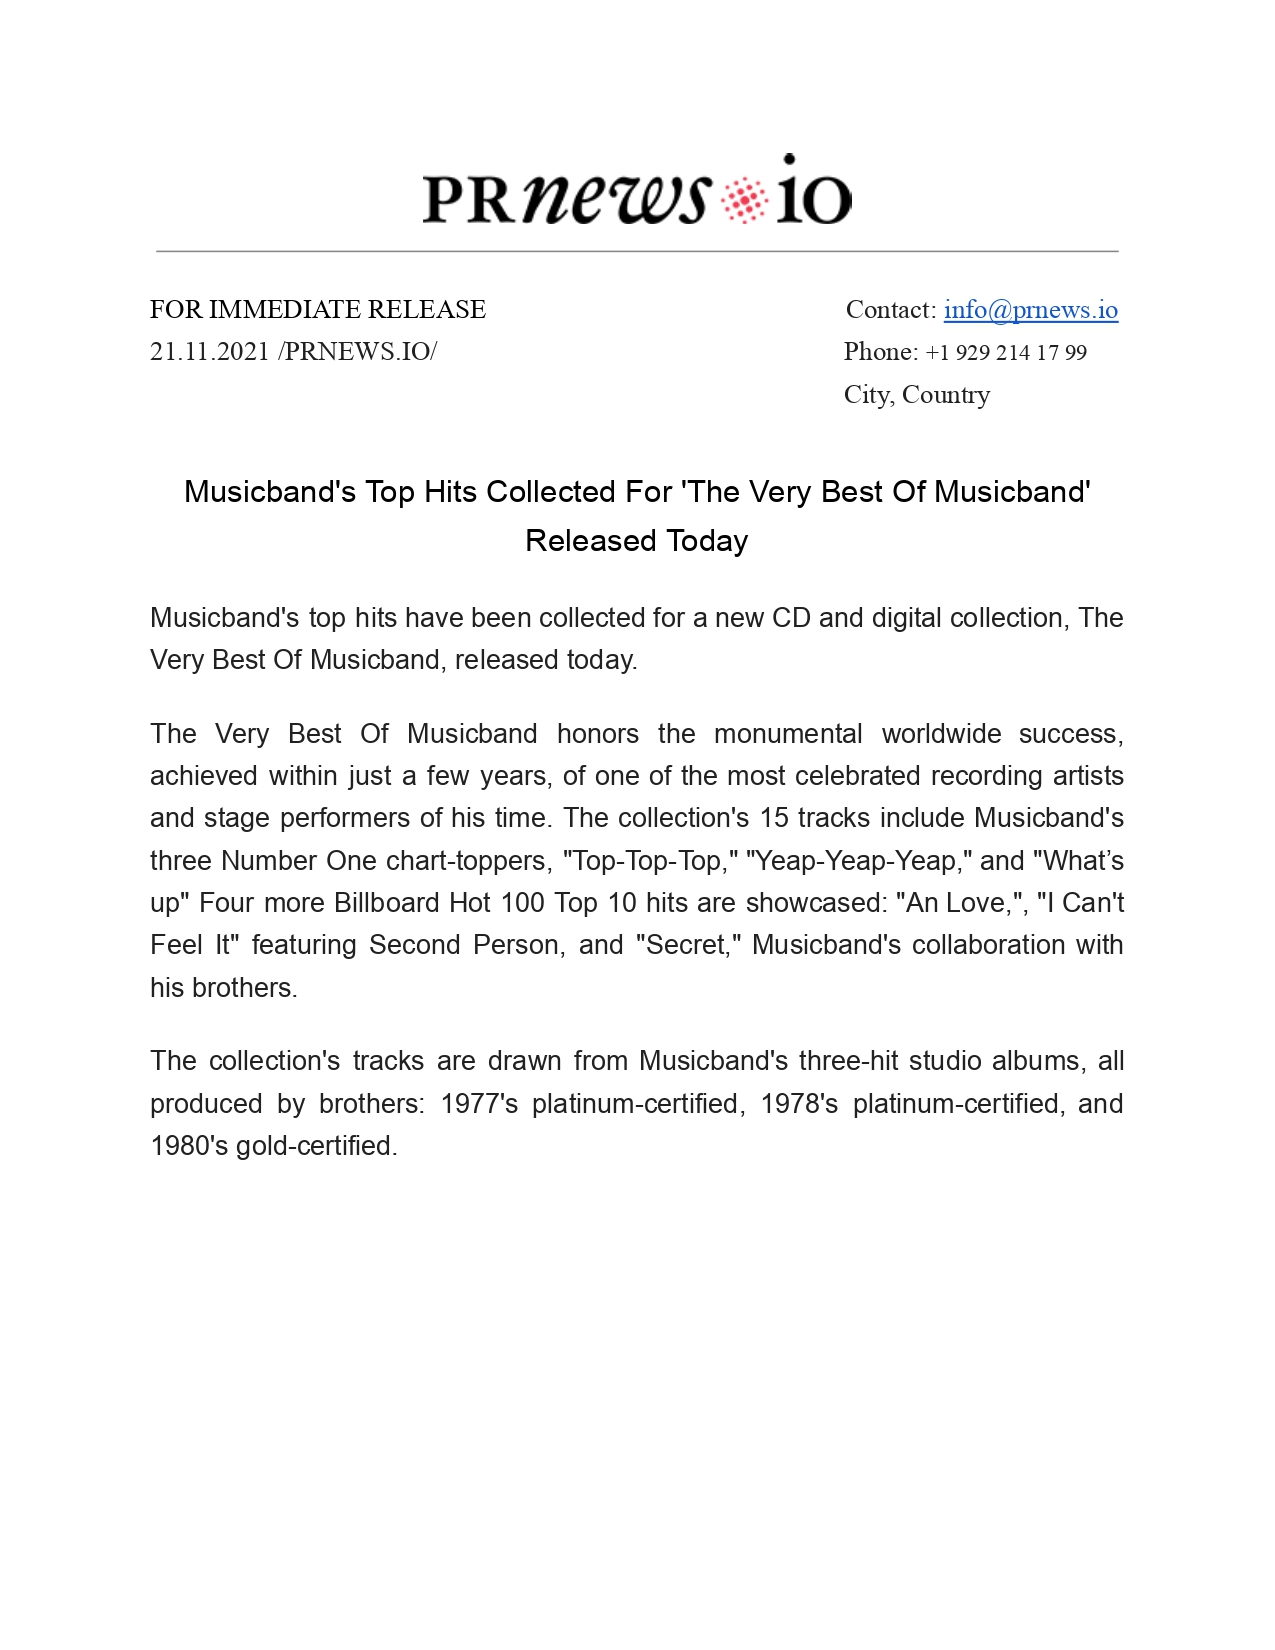 Band Press Release Example